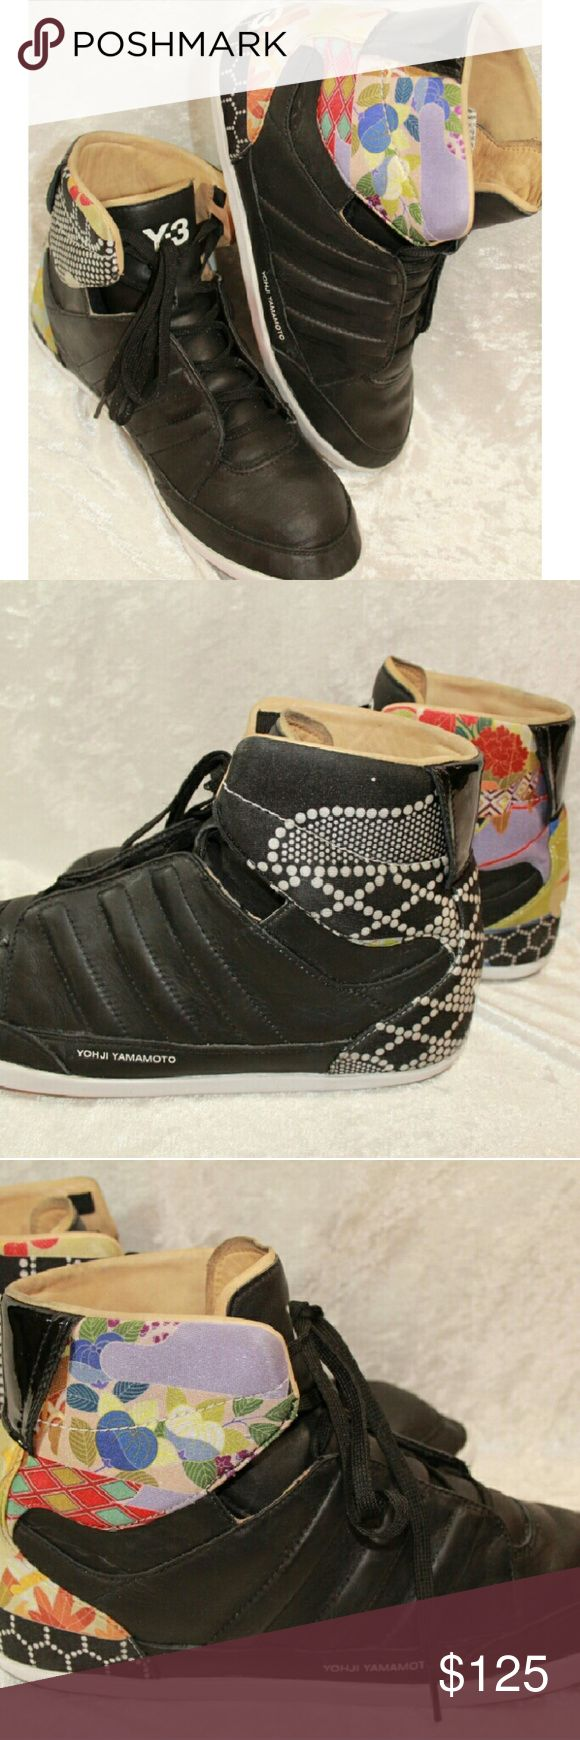 Adidas Y3 Yohji Yamamoto Leather Floral High Top 8 Rare! Y3 Yohji Yamamoto Leather upper and inner high tops.  These are in excellent condition, there are no marks or flaws and only slight wear on the soles. Yohji Yamamoto Shoes Athletic Shoes